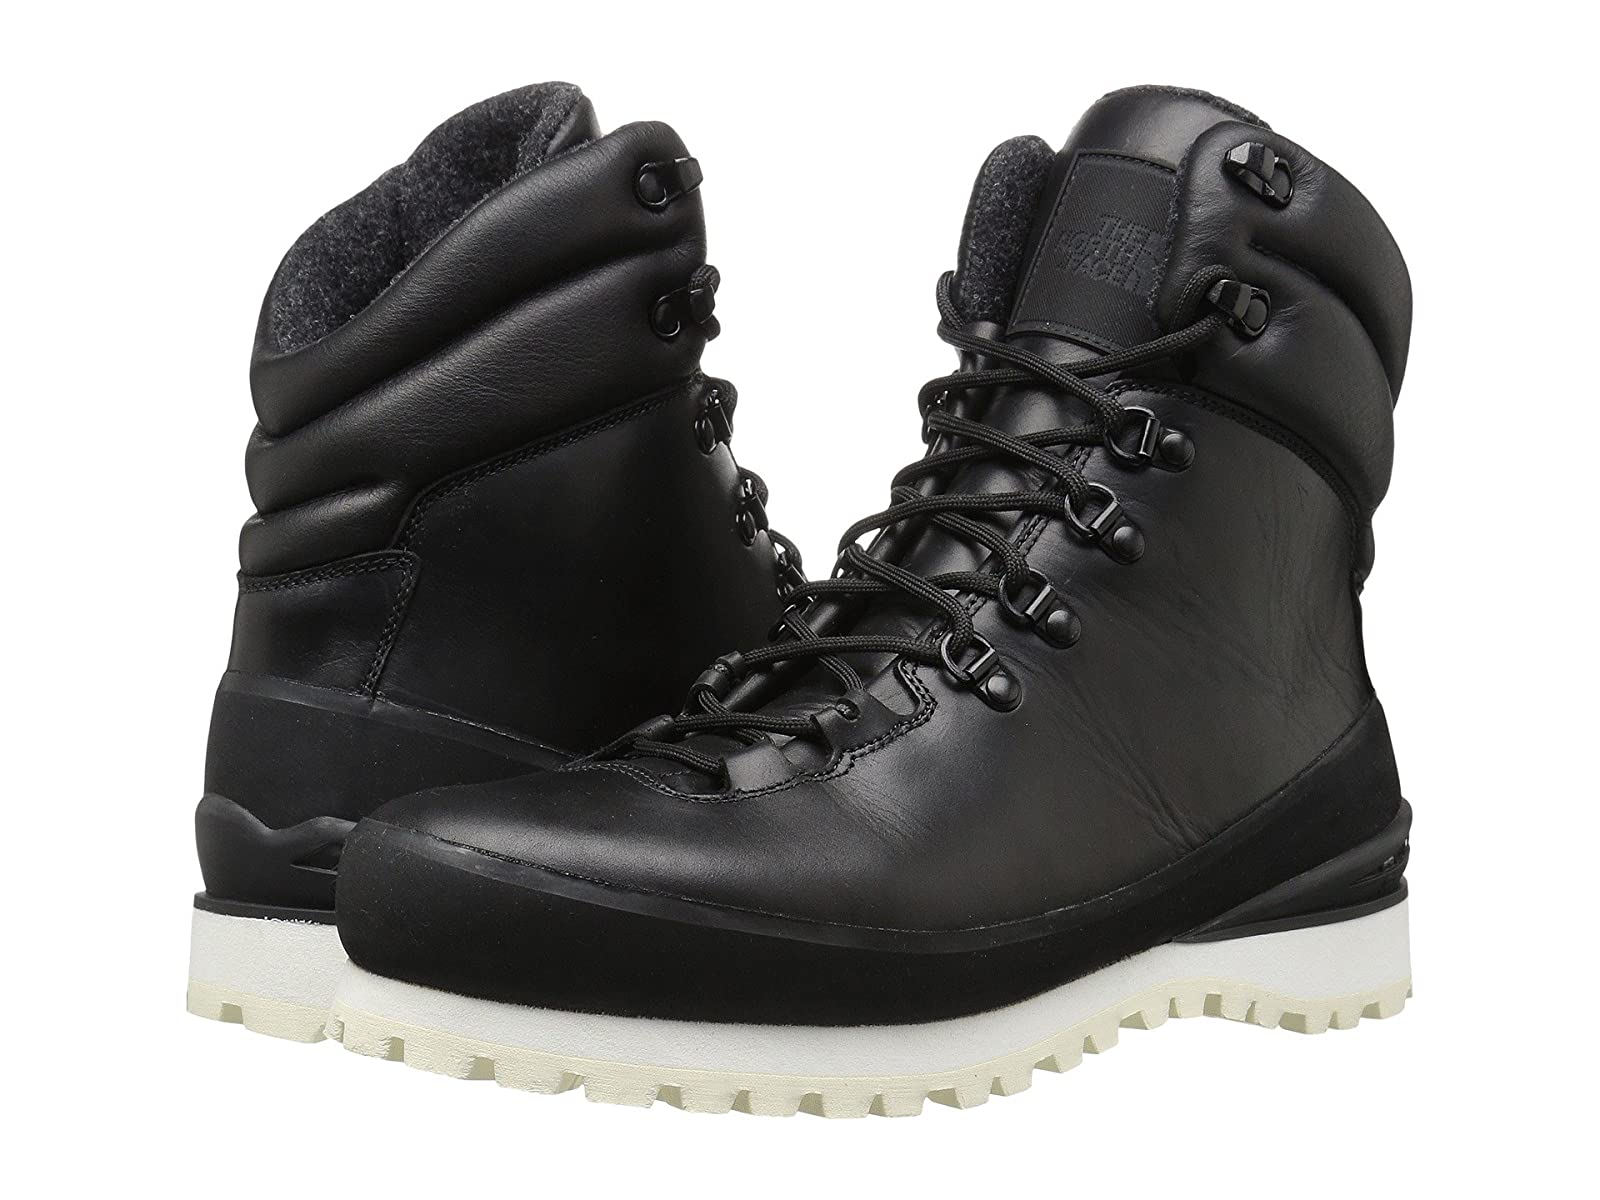 Cryos by The North Face Cryos HikerCheap and distinctive eye-catching shoes